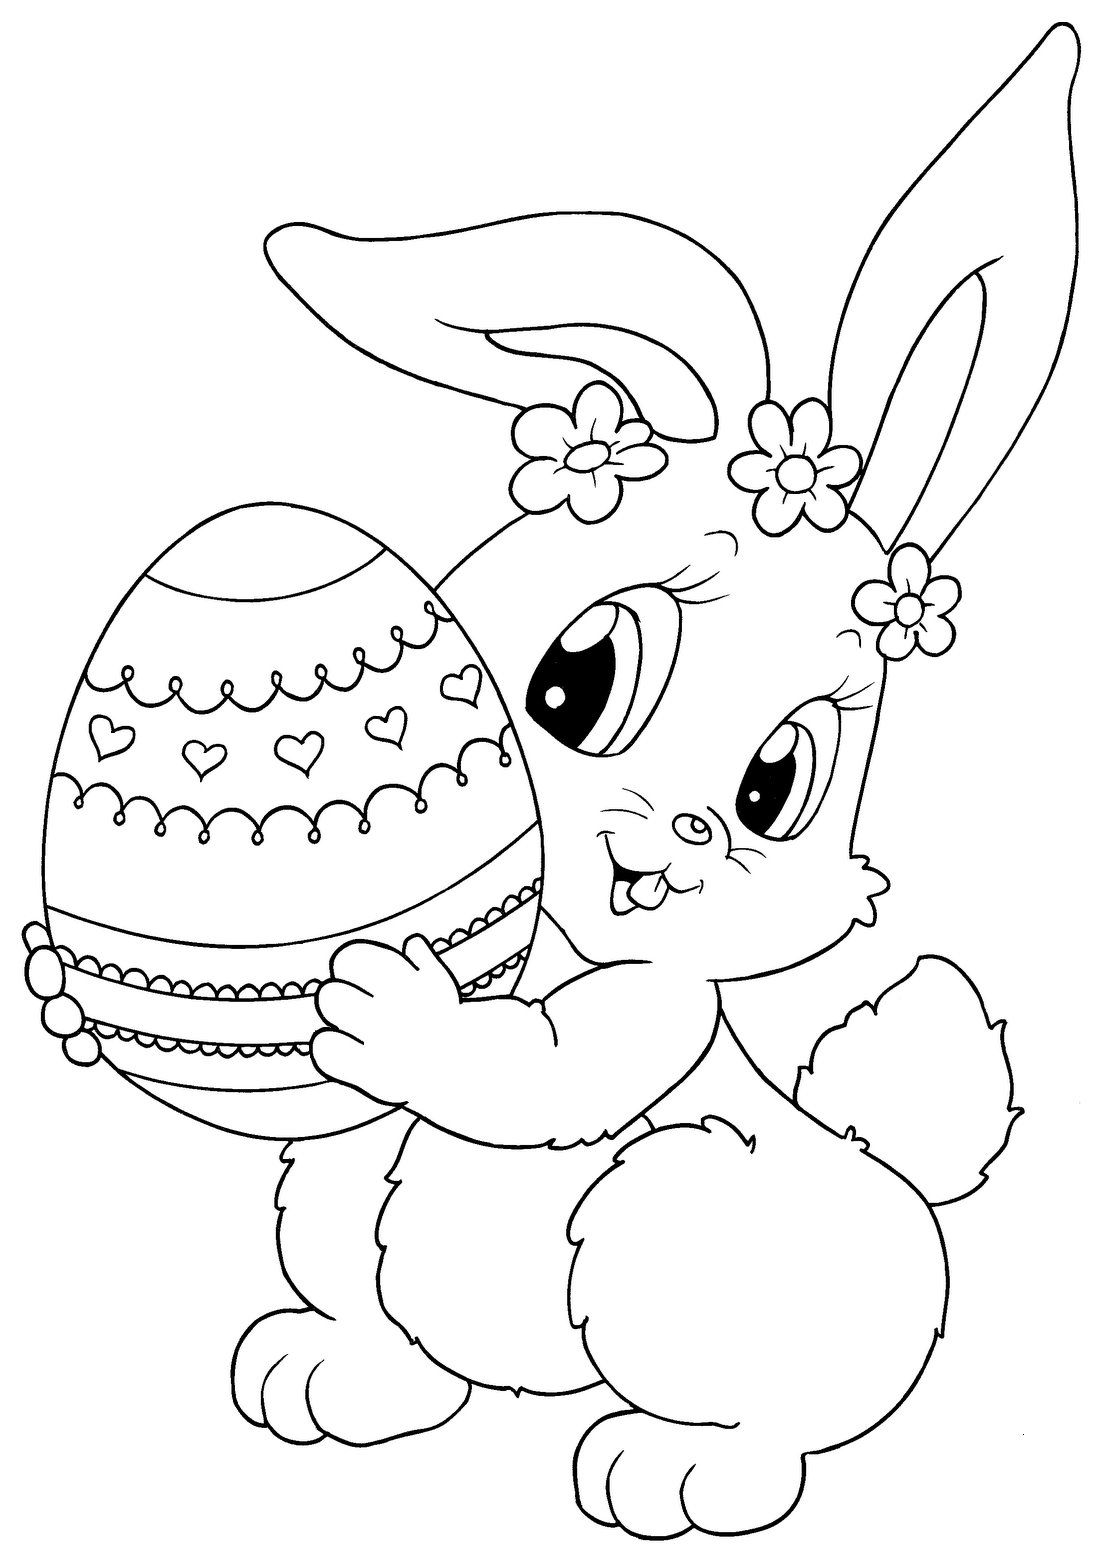 Pin By Vita Gorbacheva On Pascoa Coelhos Bunny Coloring Pages Easter Bunny Colouring Easter Printables Free